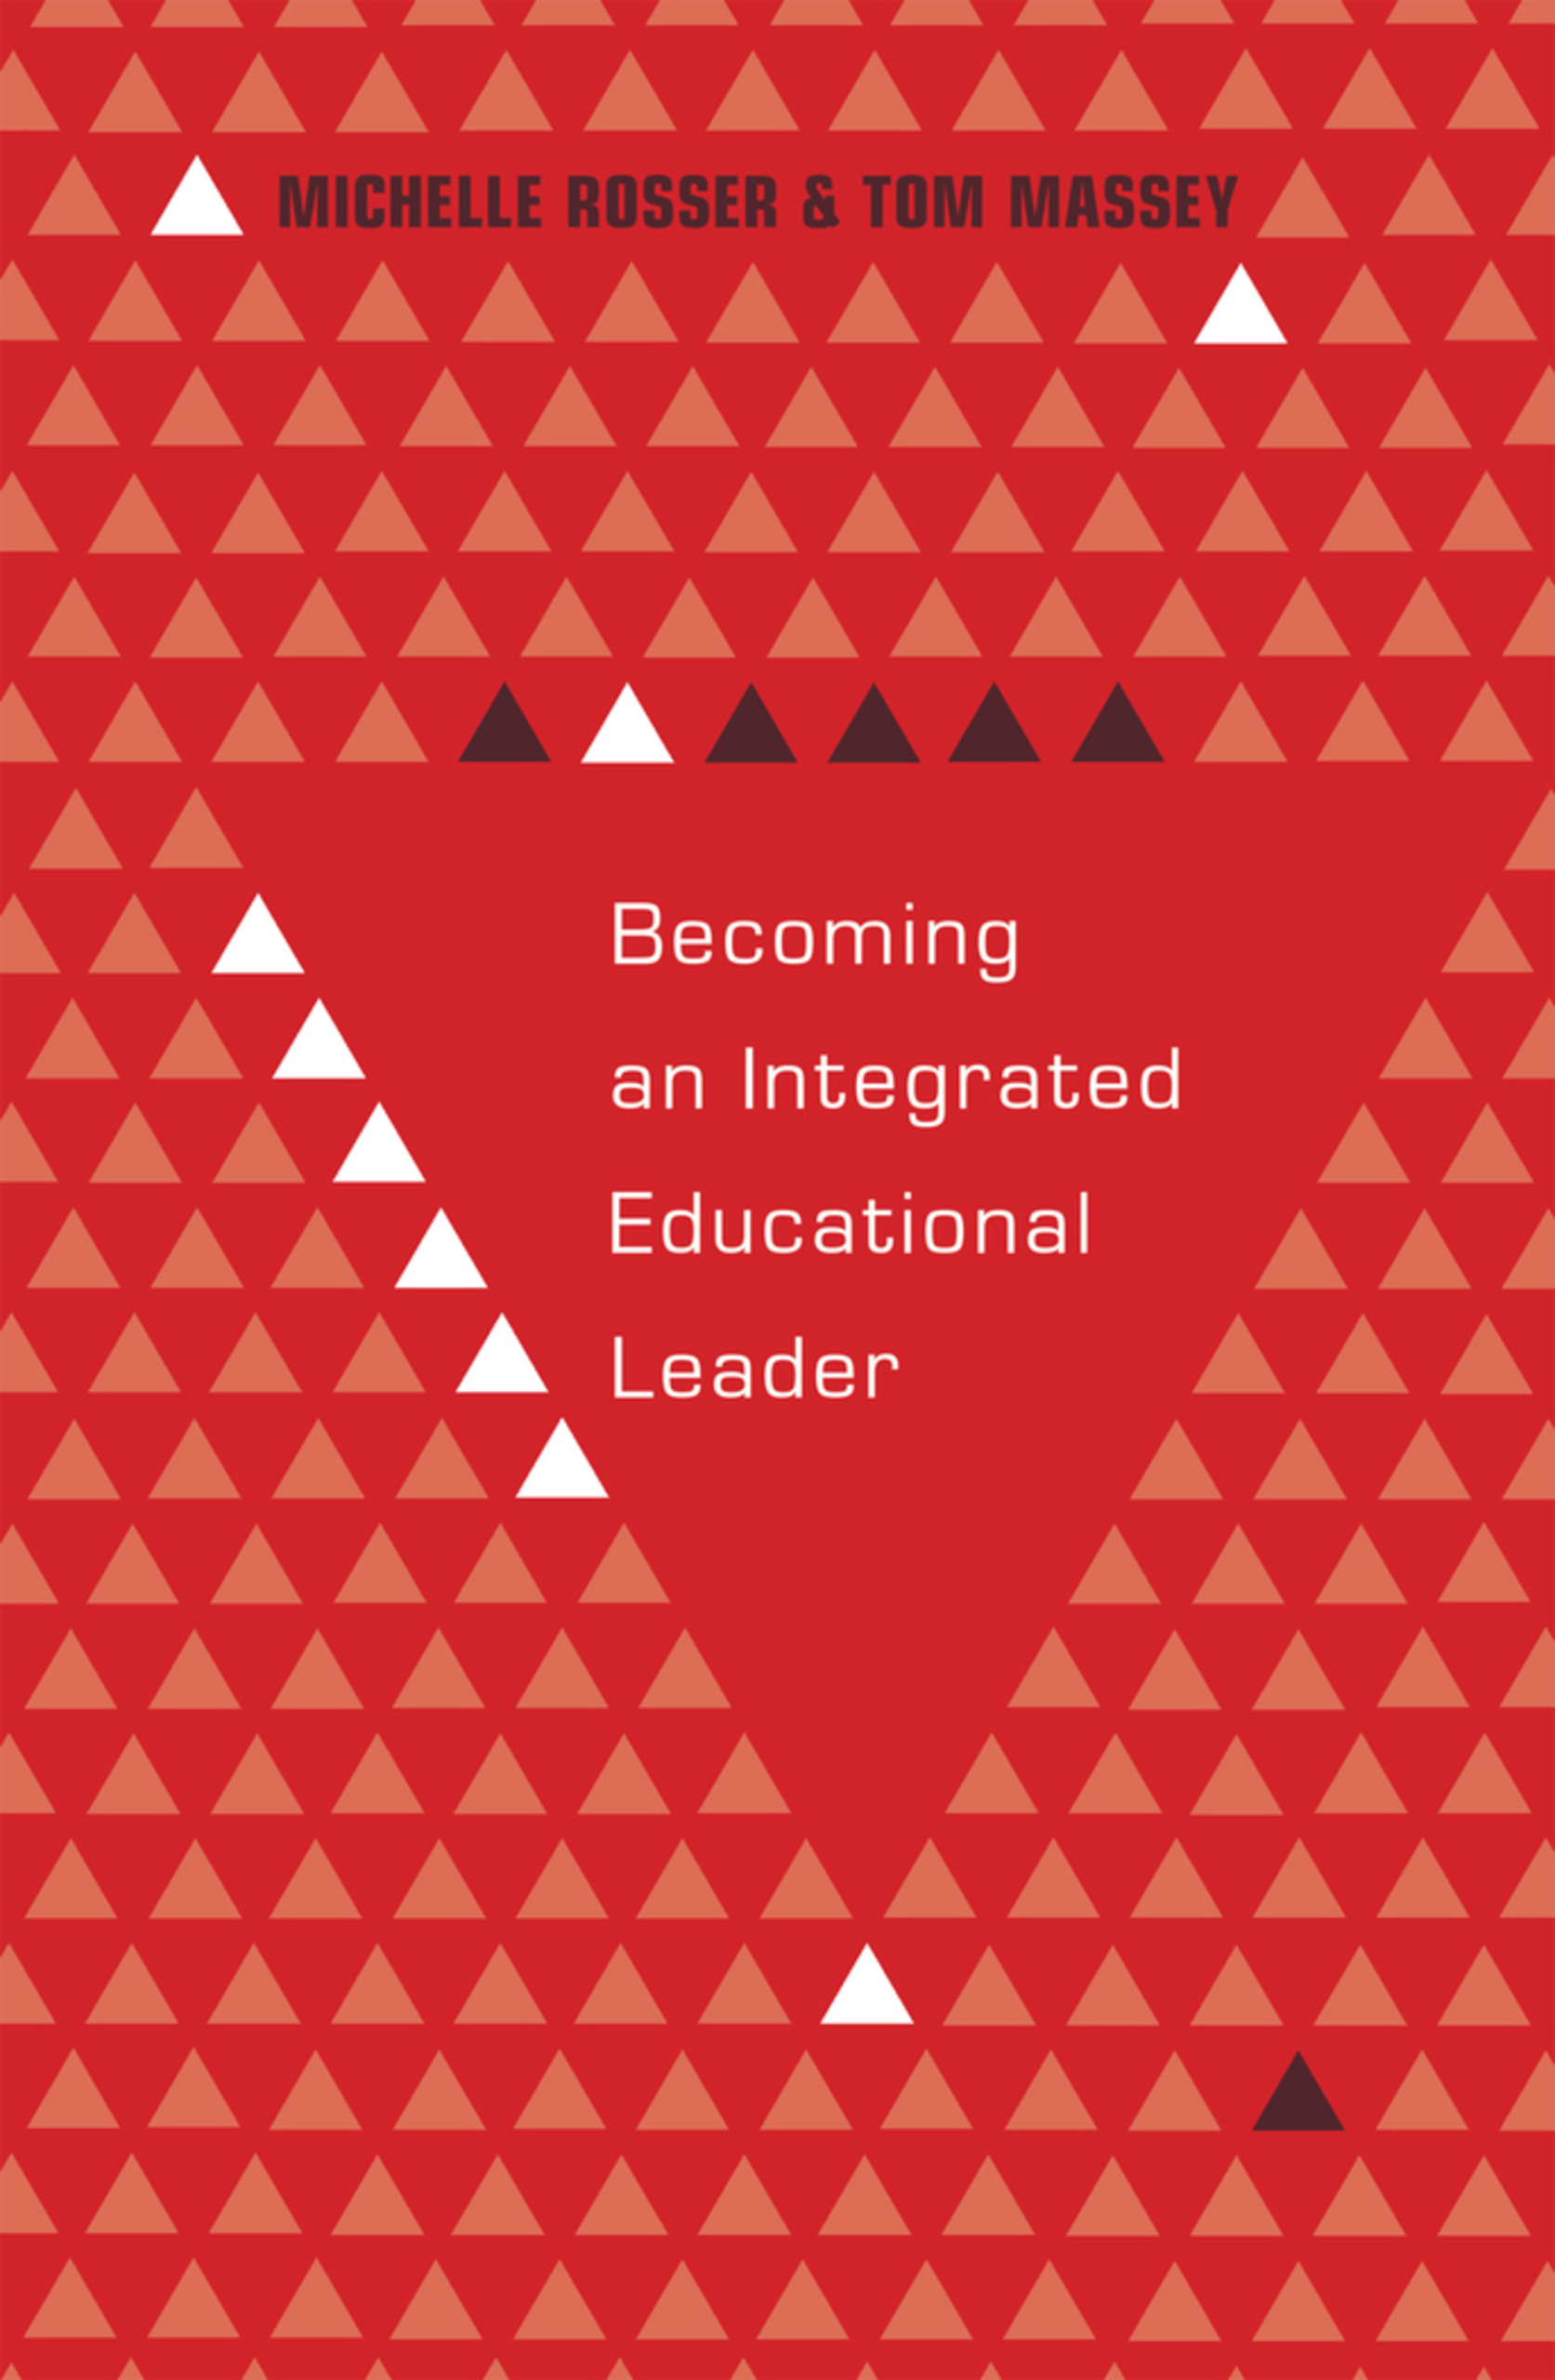 Title: Becoming an Integrated Educational Leader